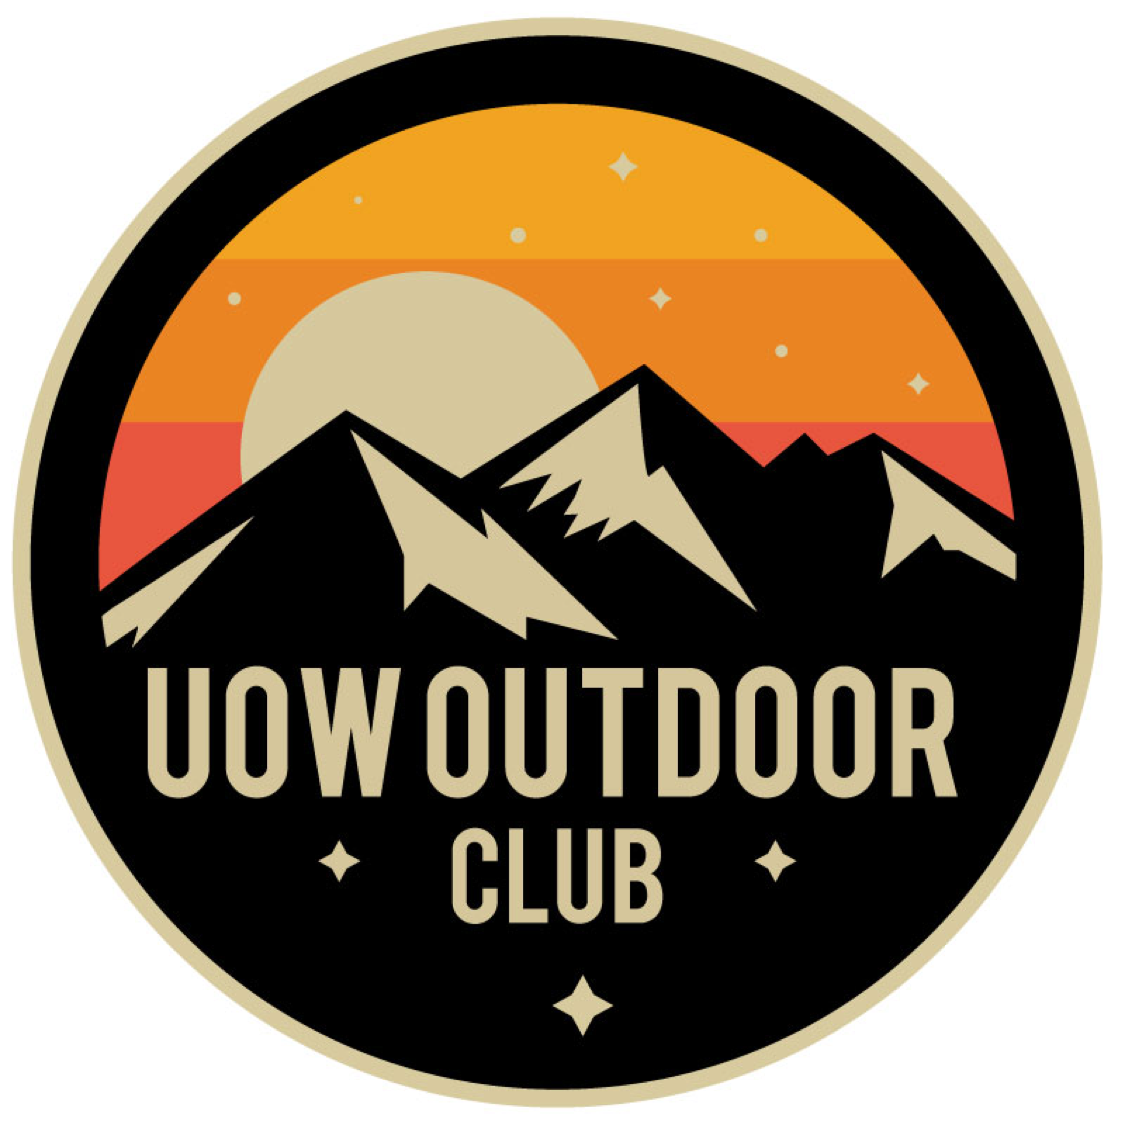 UOW Outdoor Club